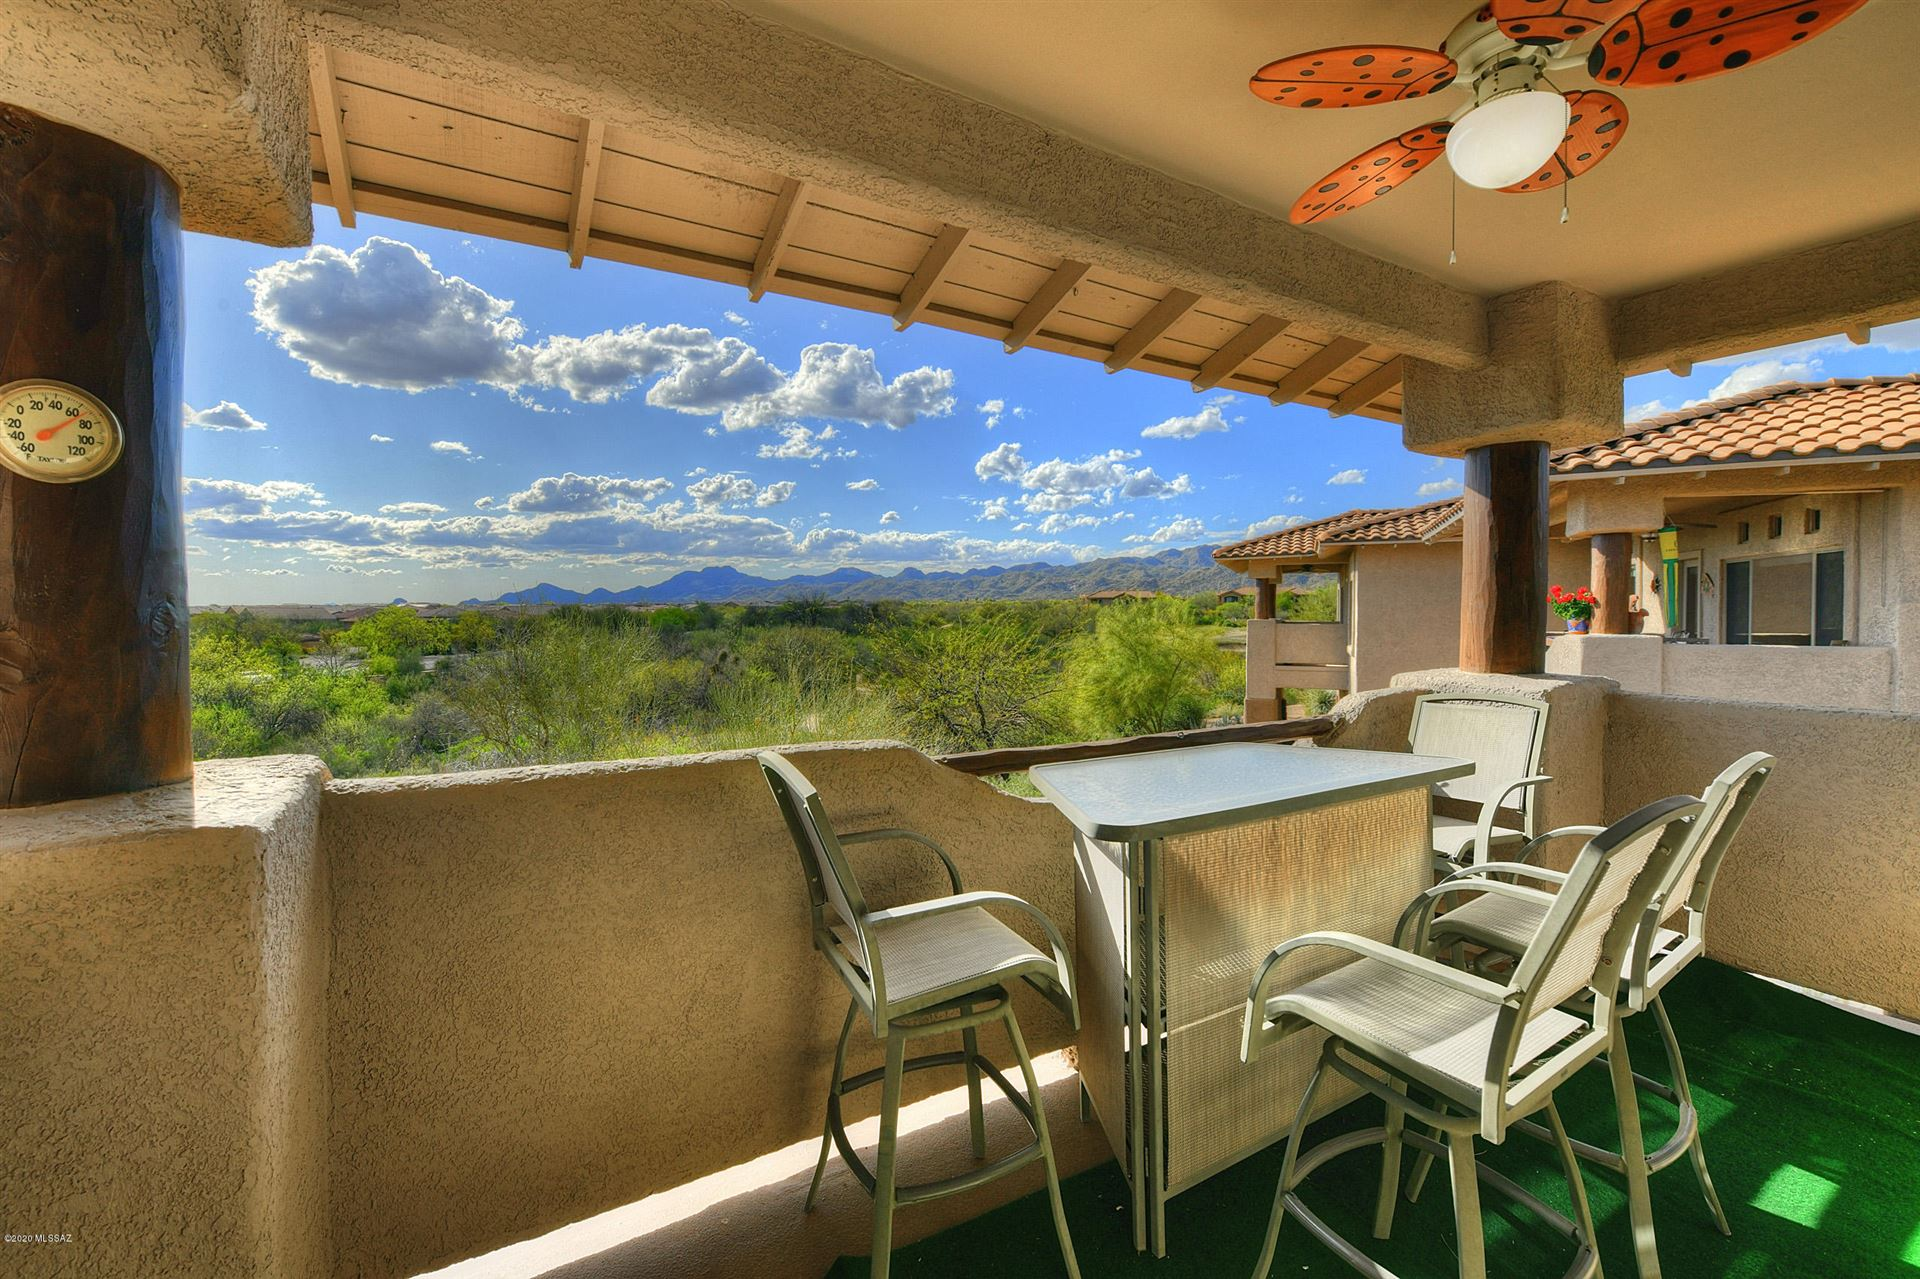 655 W Vistoso Highlands Drive #227, Oro Valley, AZ 85755 - #: 22009691